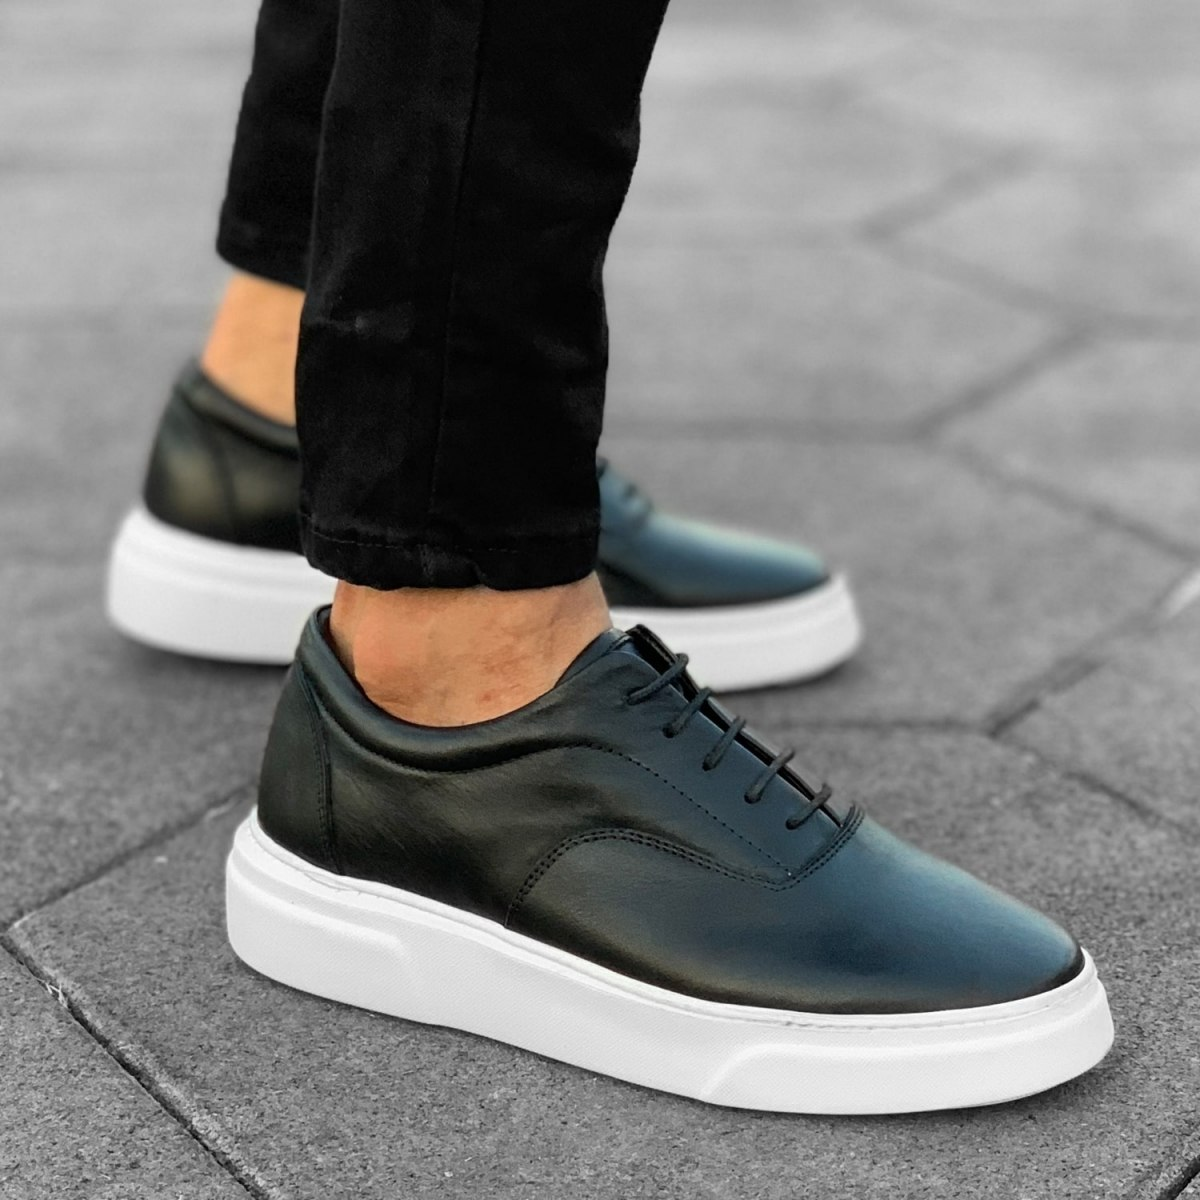 Premium Leather Casual Sneakers in Black White Mv Premium Brand - 2